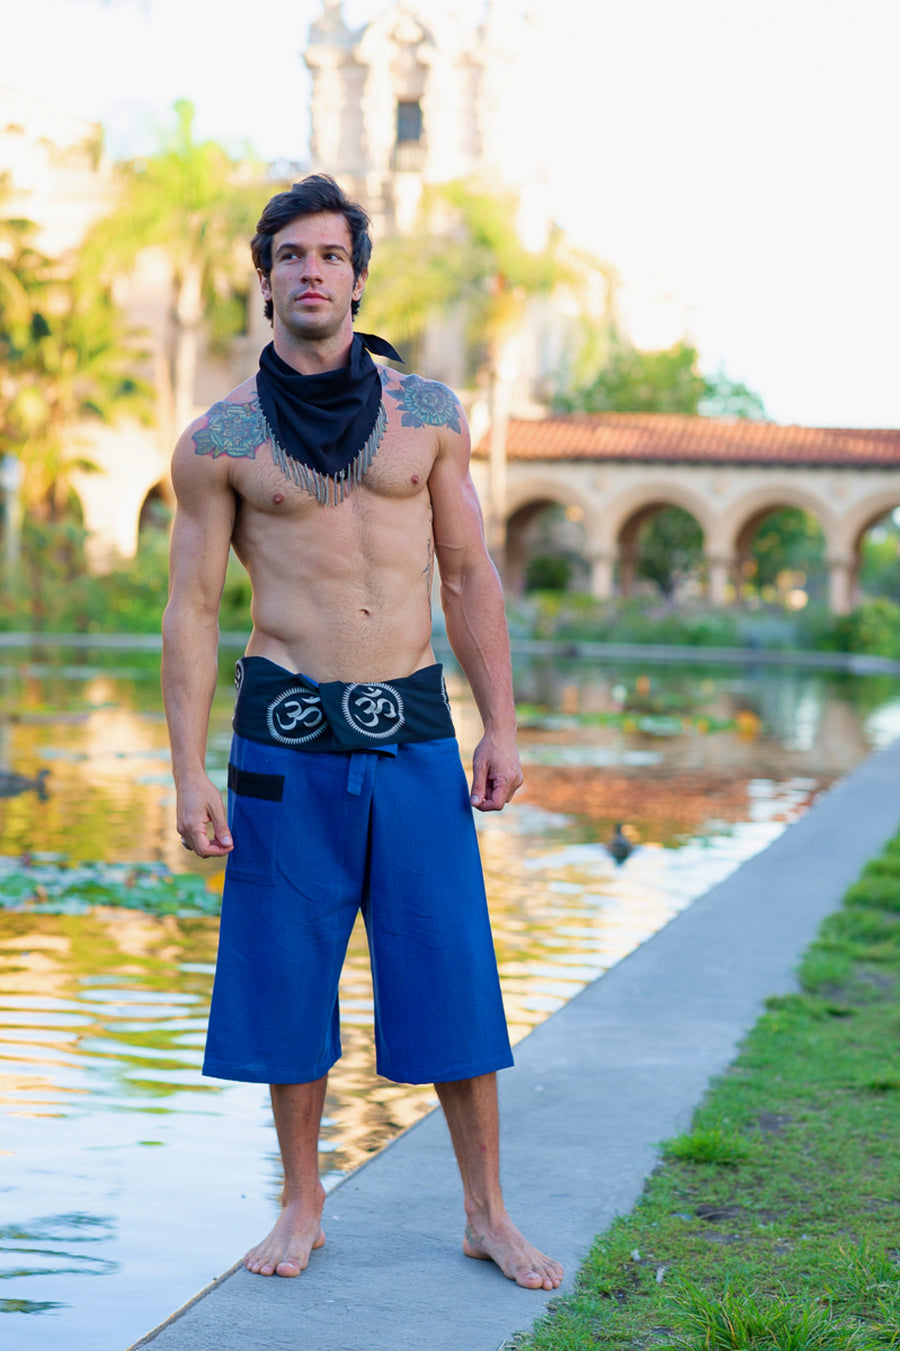 Om Fisherman Shorts in Blue-The High Thai-The High Thai-Yoga Pants-Harem Pants-Hippie Clothing-San Diego